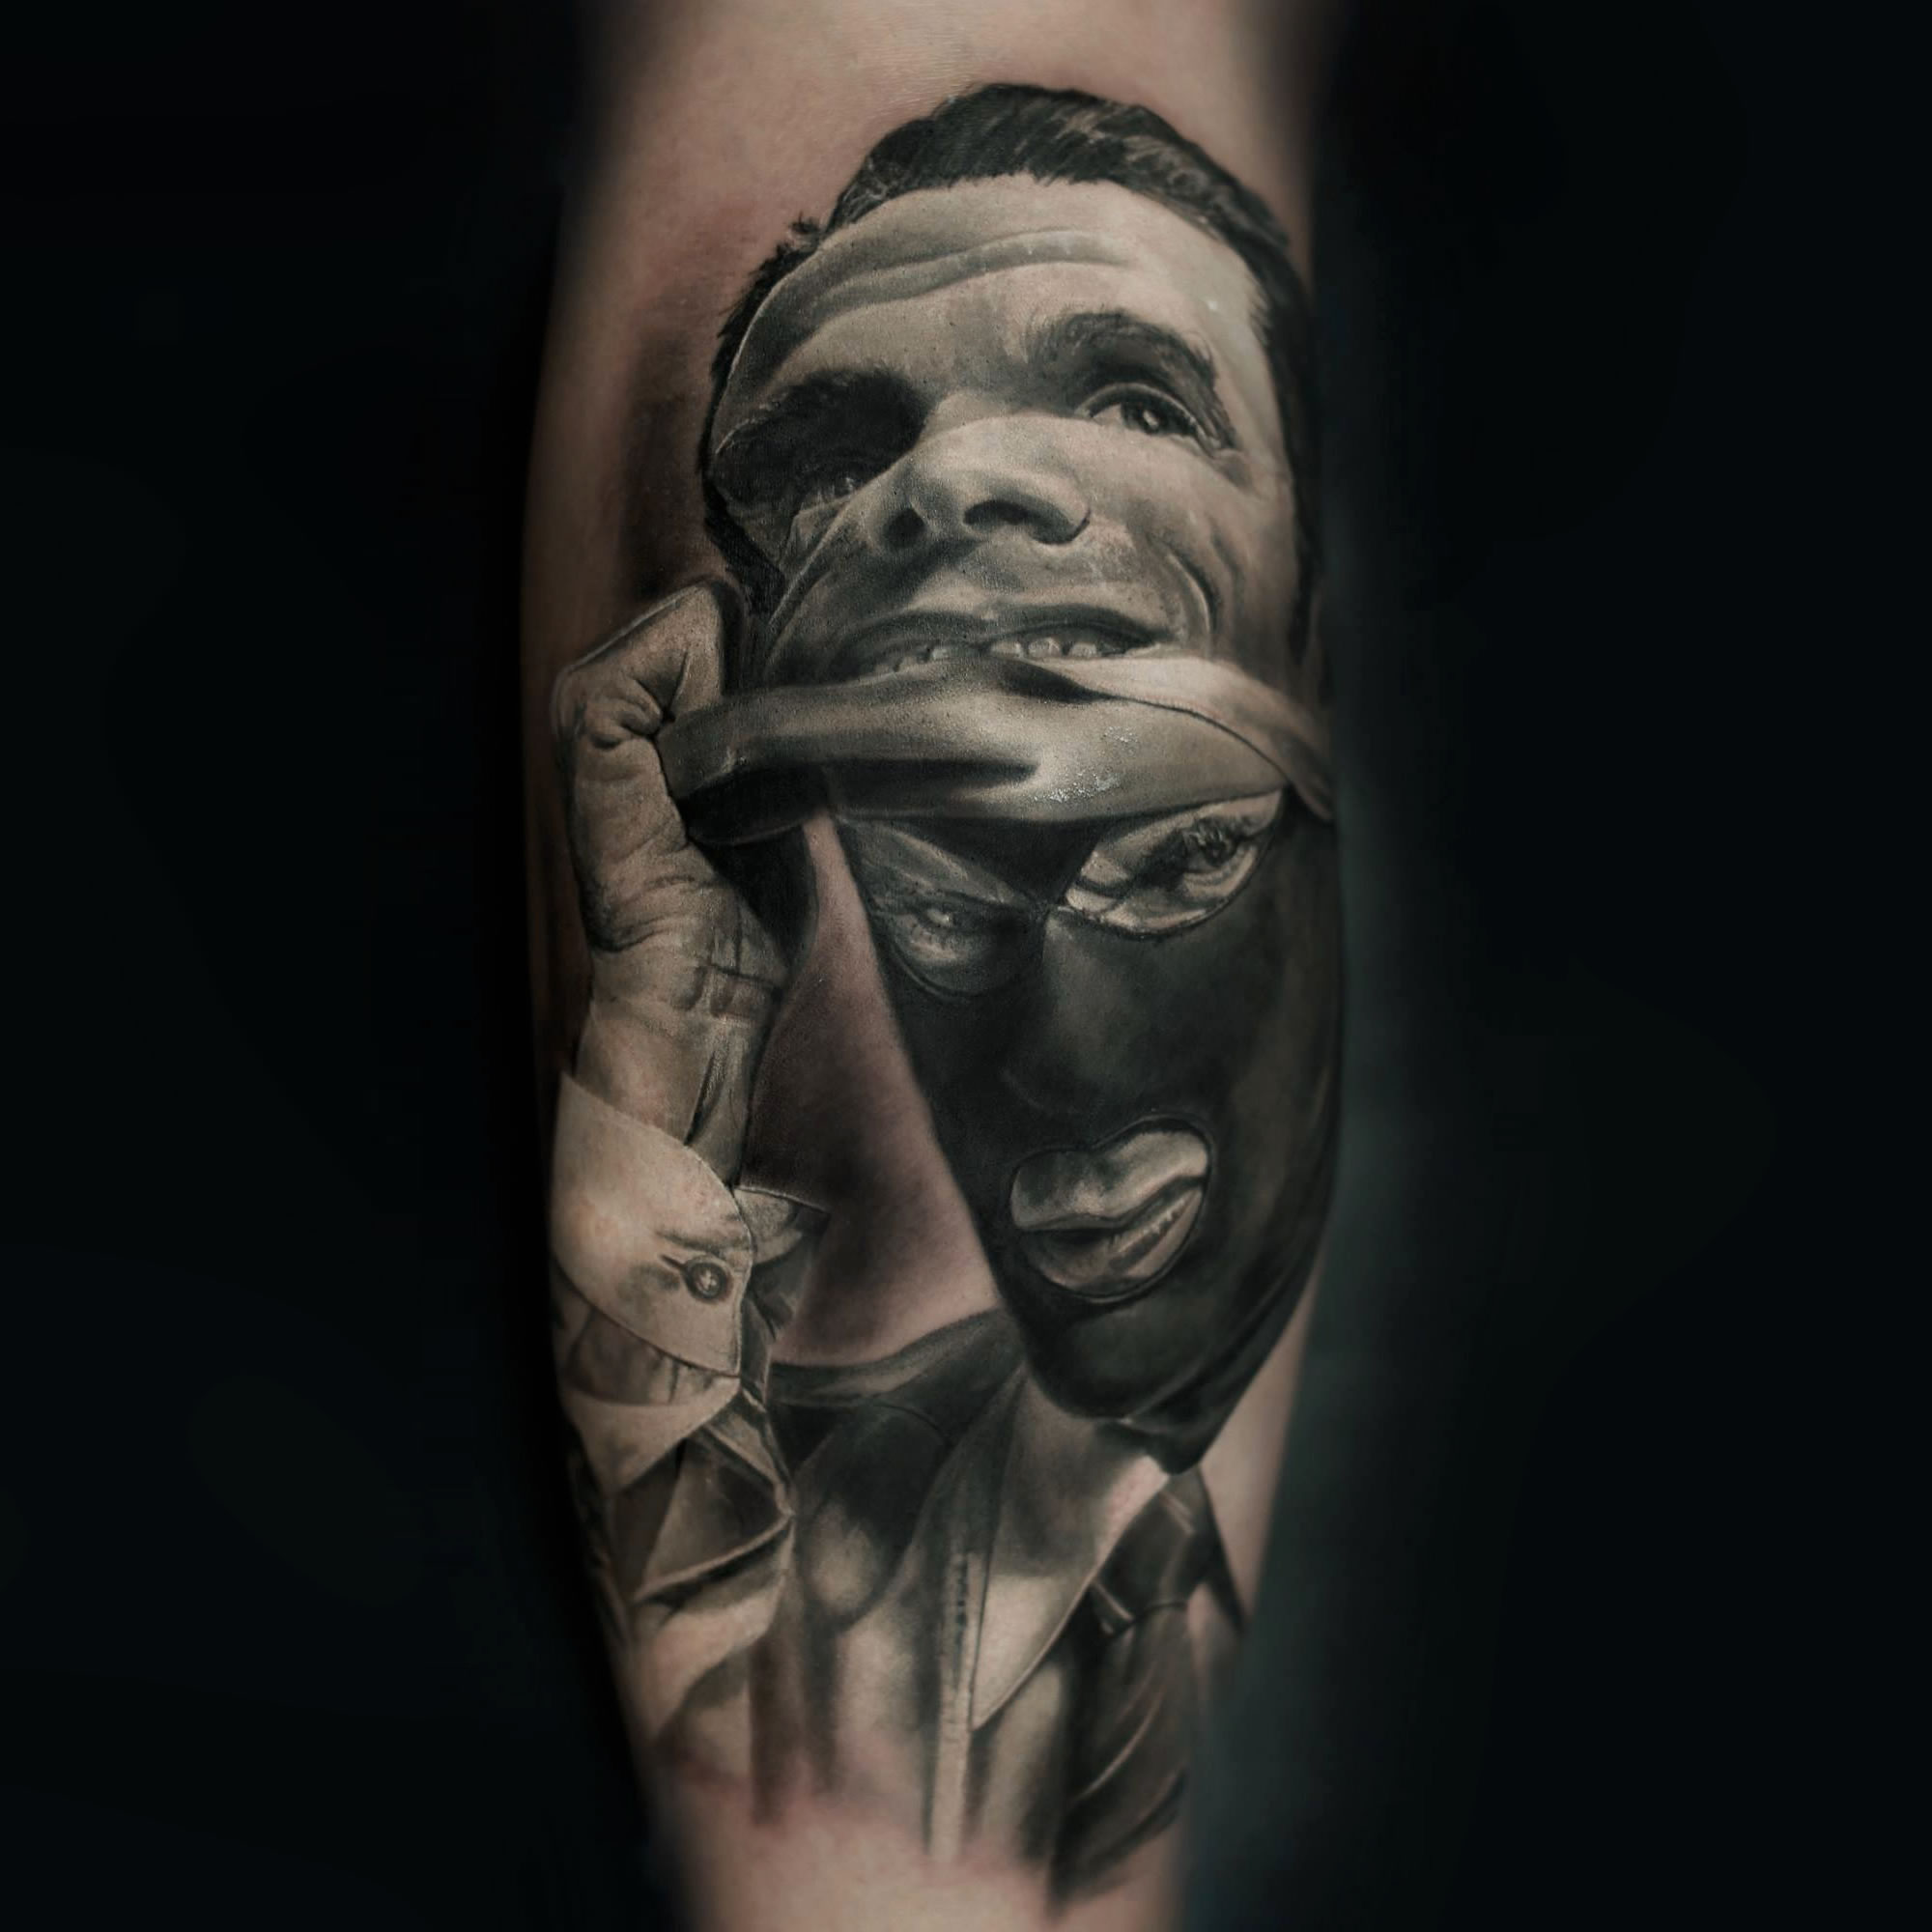 Iwan Yug's Photorealistic Tattoos